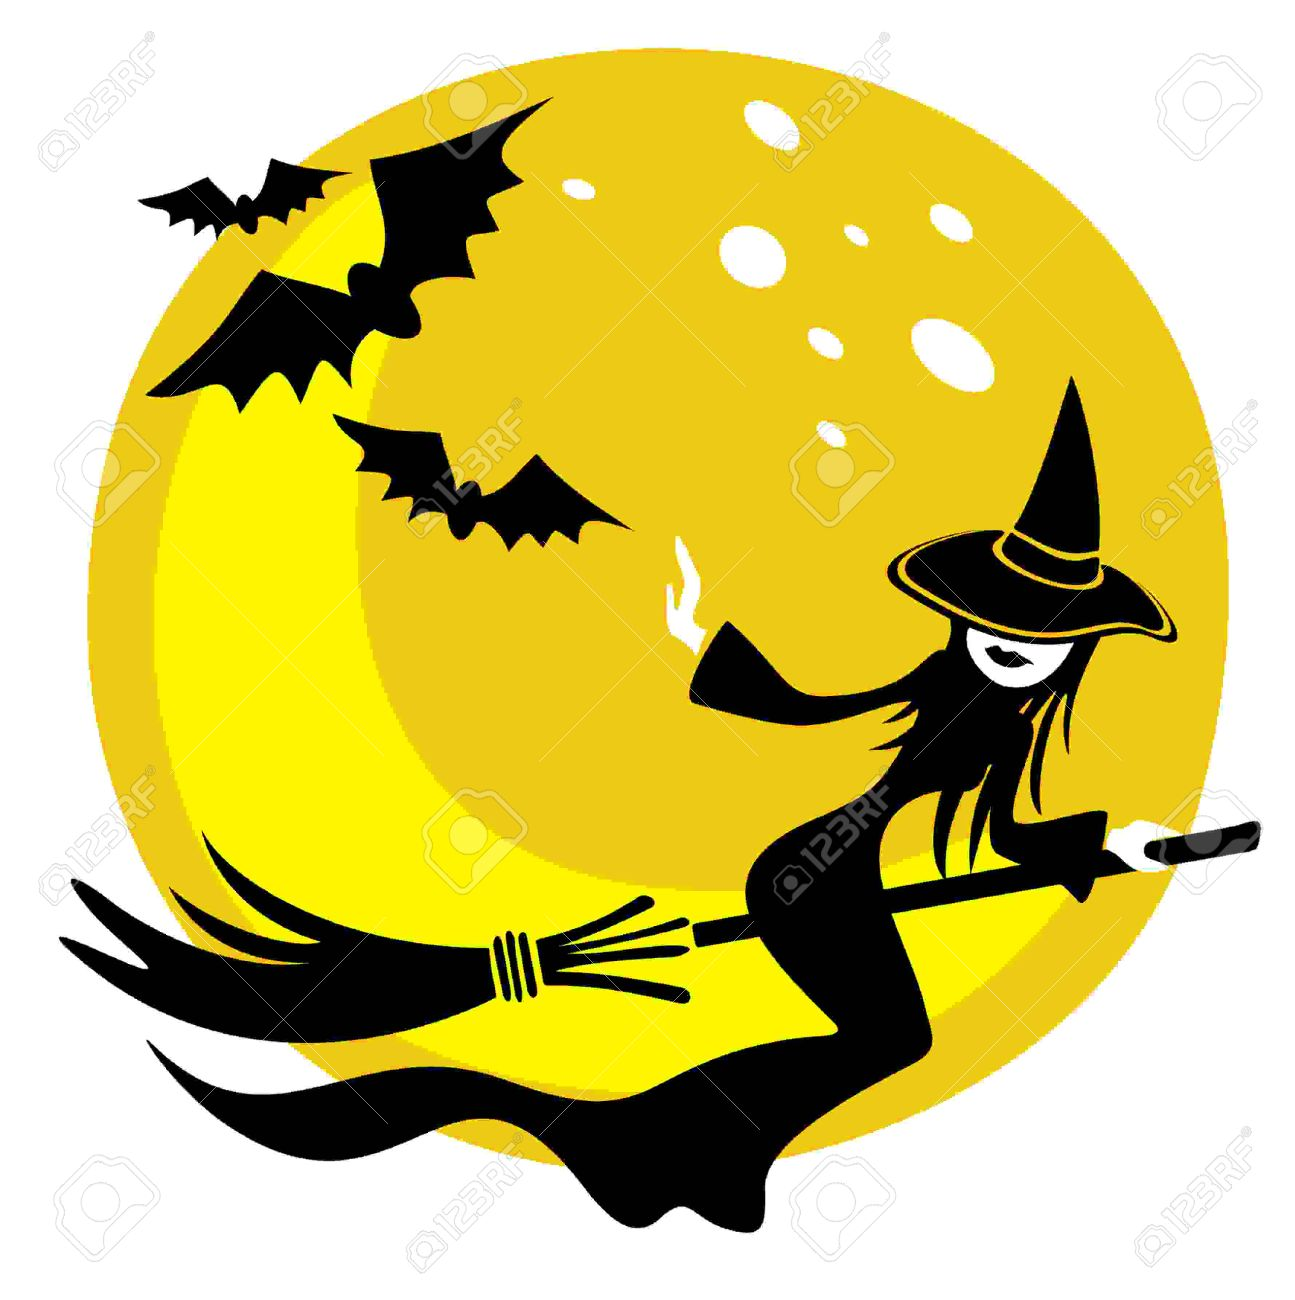 Nice flying witch on a moon background. Halloween illustration. Stock Vector - 5260388